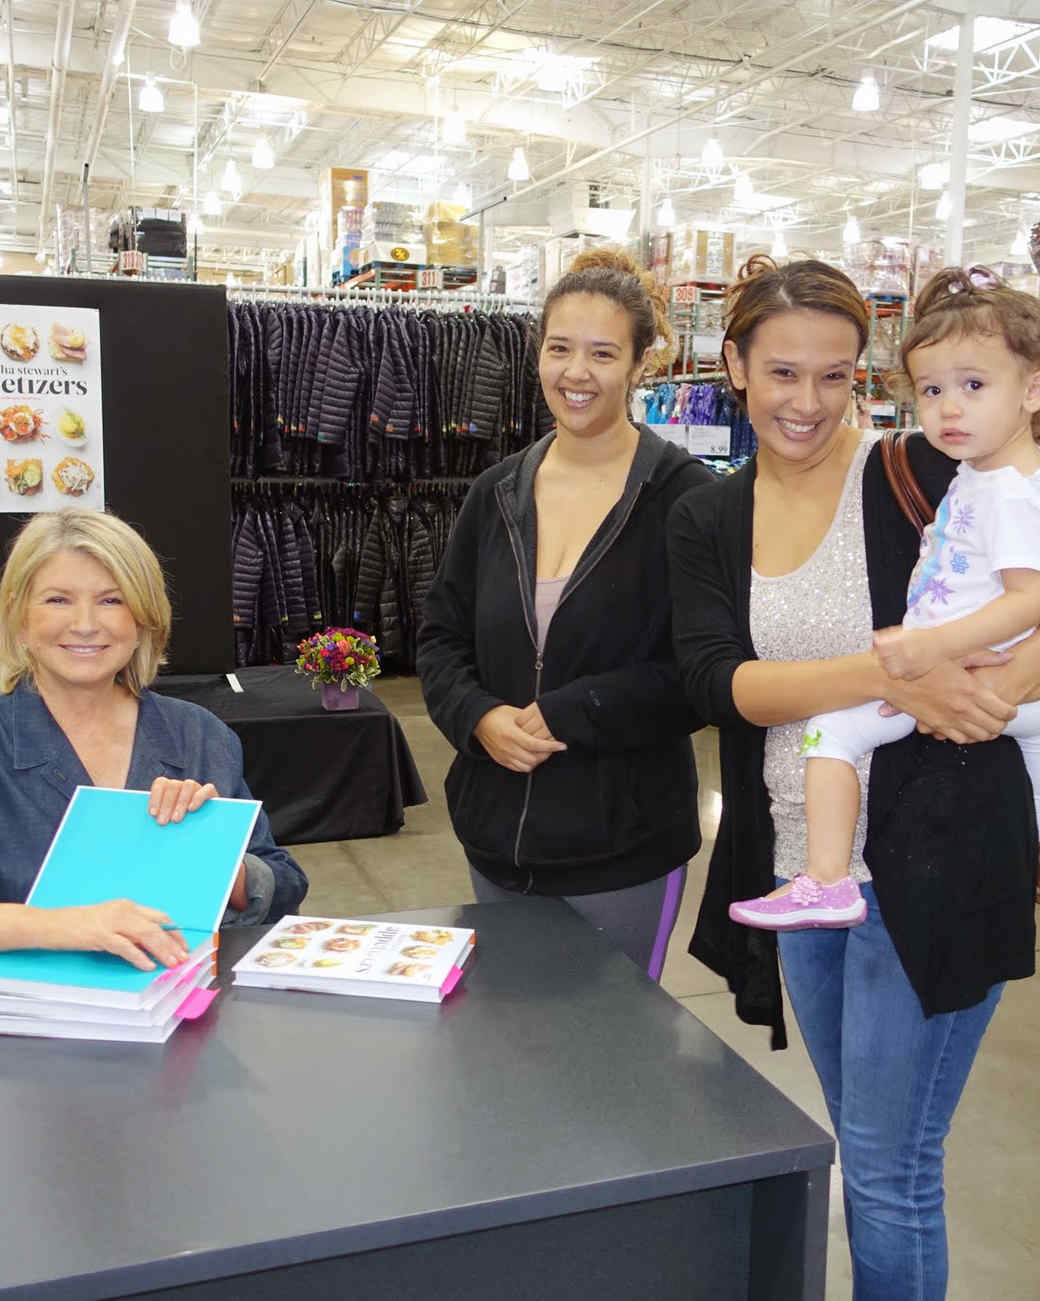 book-signing-costco-10.jpg